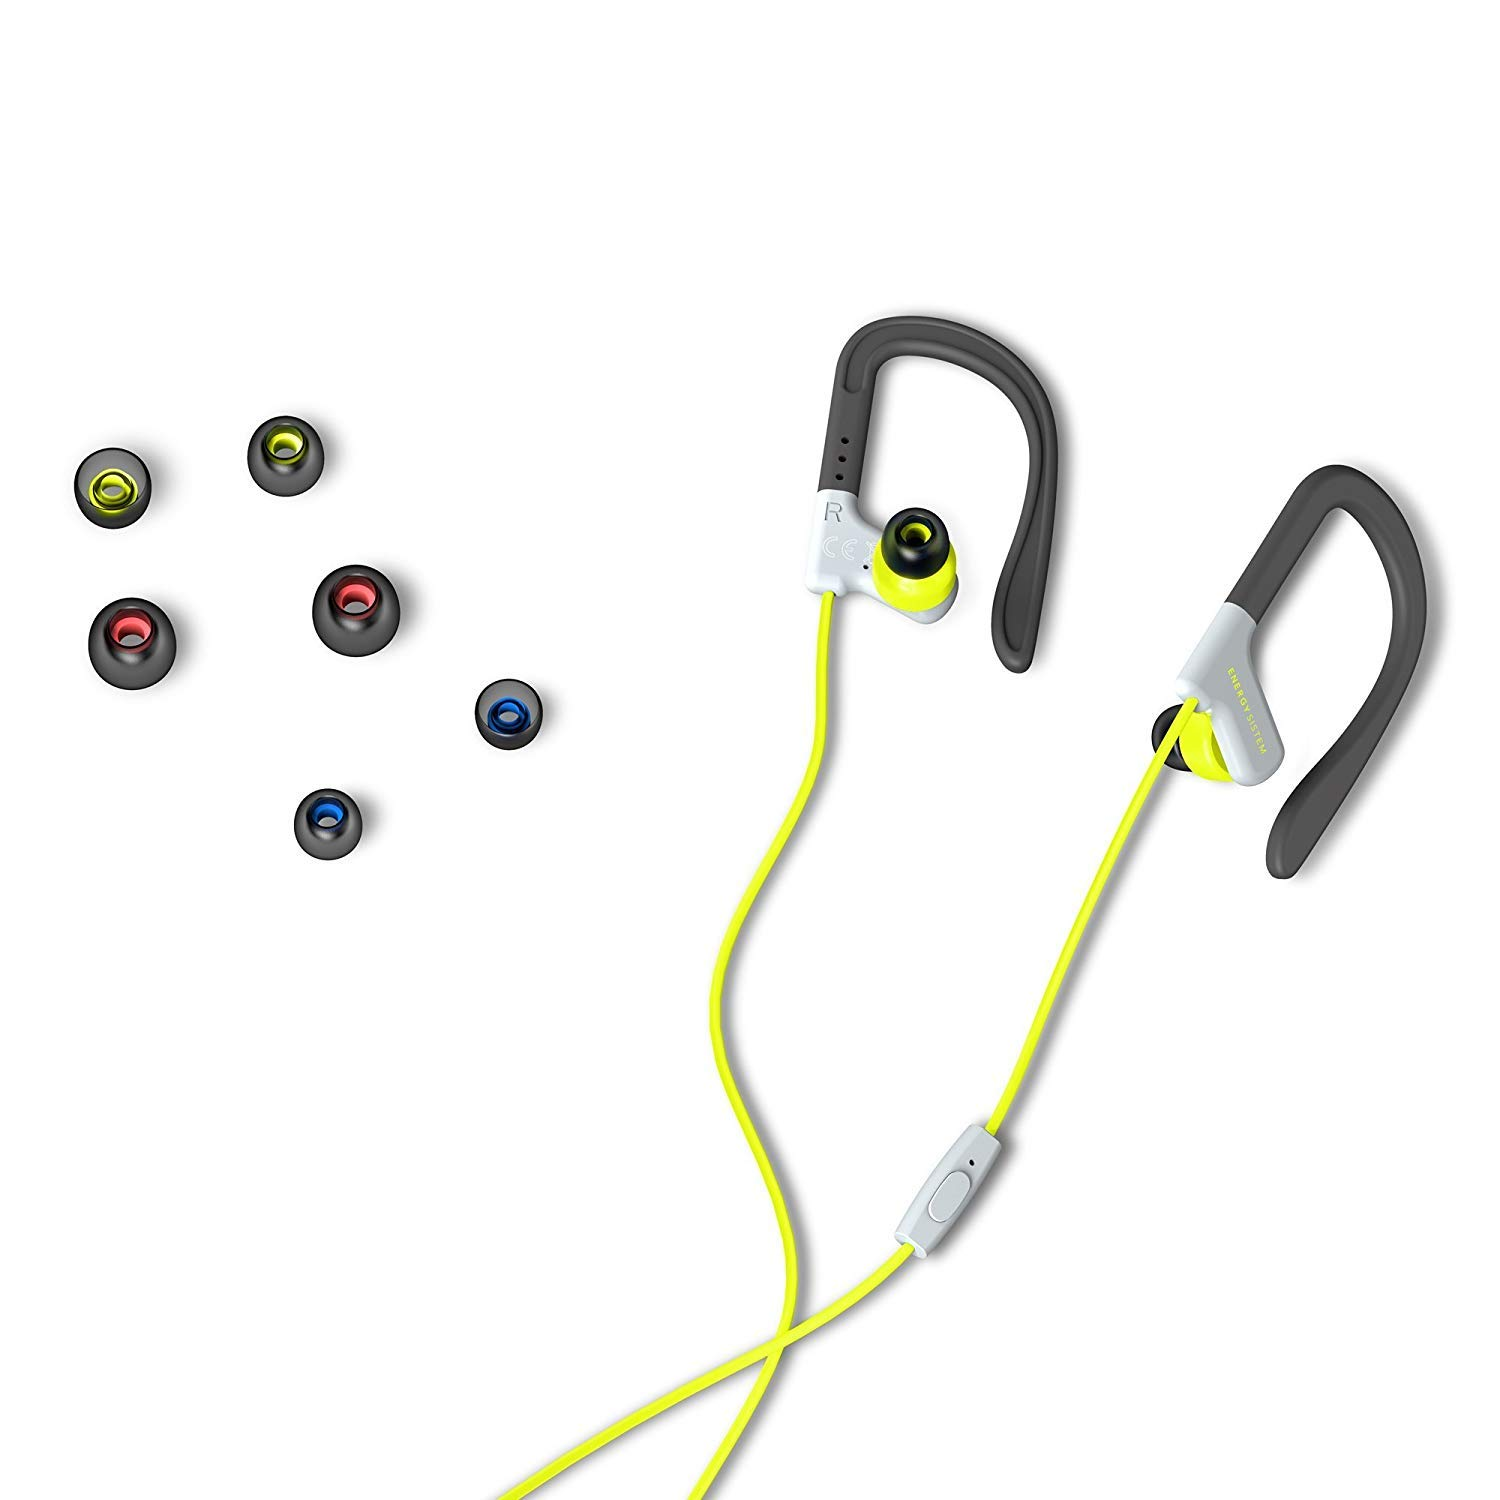 Energy Sistem Sport 1 - Auriculares Deportivos (Cable DE 1.2 m, Mini Jack 3.5 mm, micrófono Incorporado, Secure-fit, Sweatproof, Control Talk) Color ...